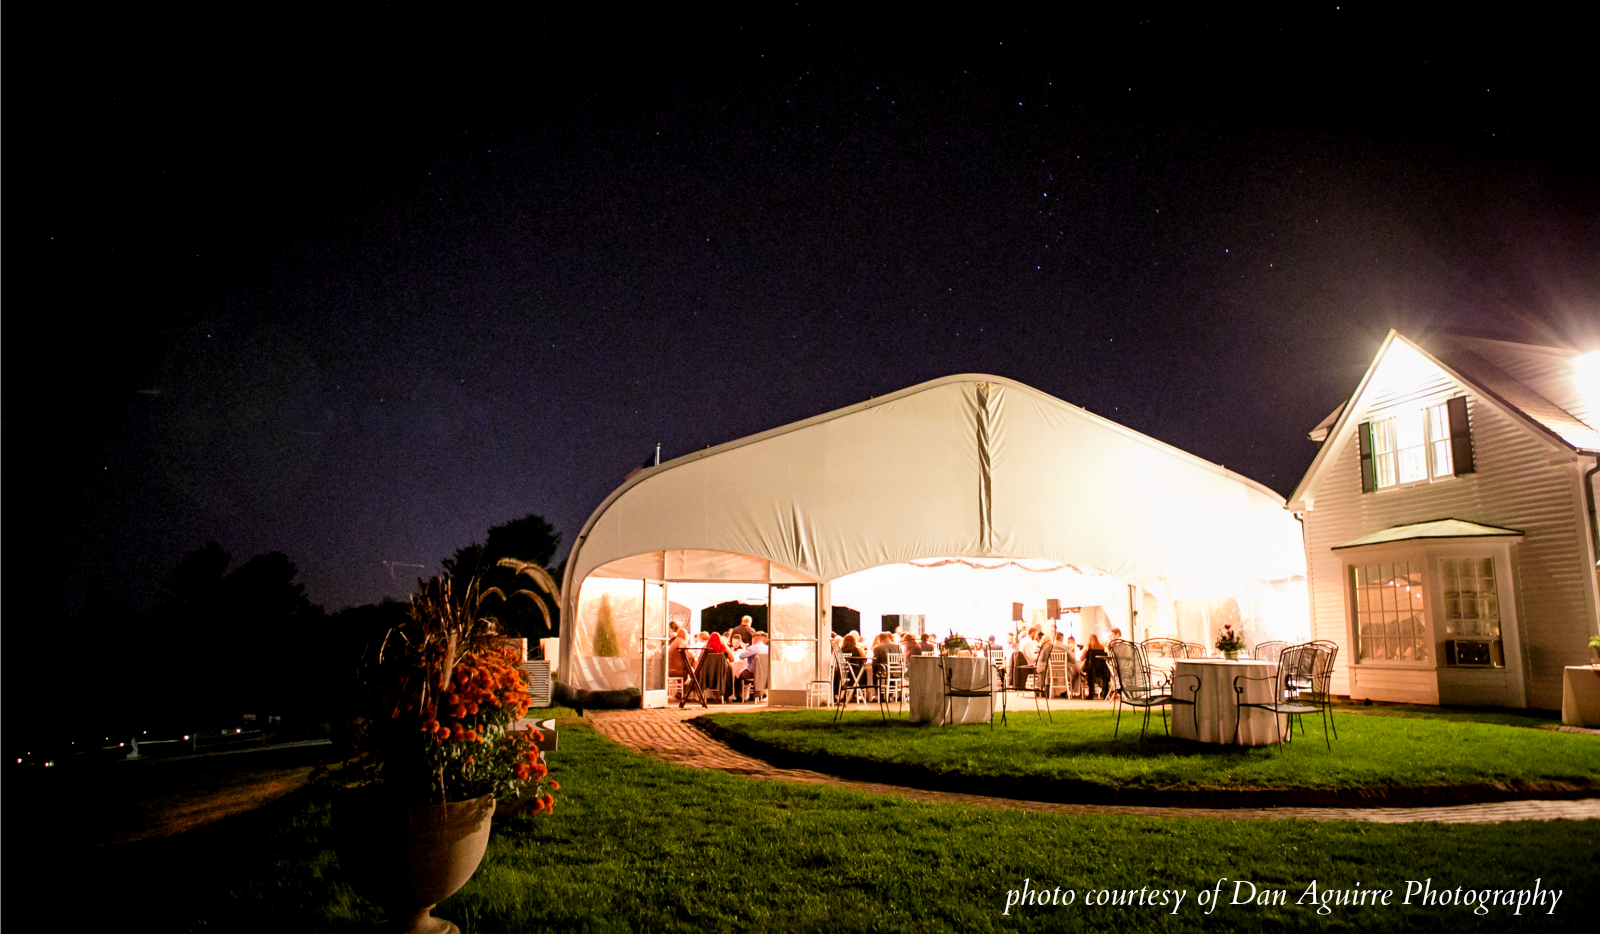 Large event in progress under tent at night, lit up.